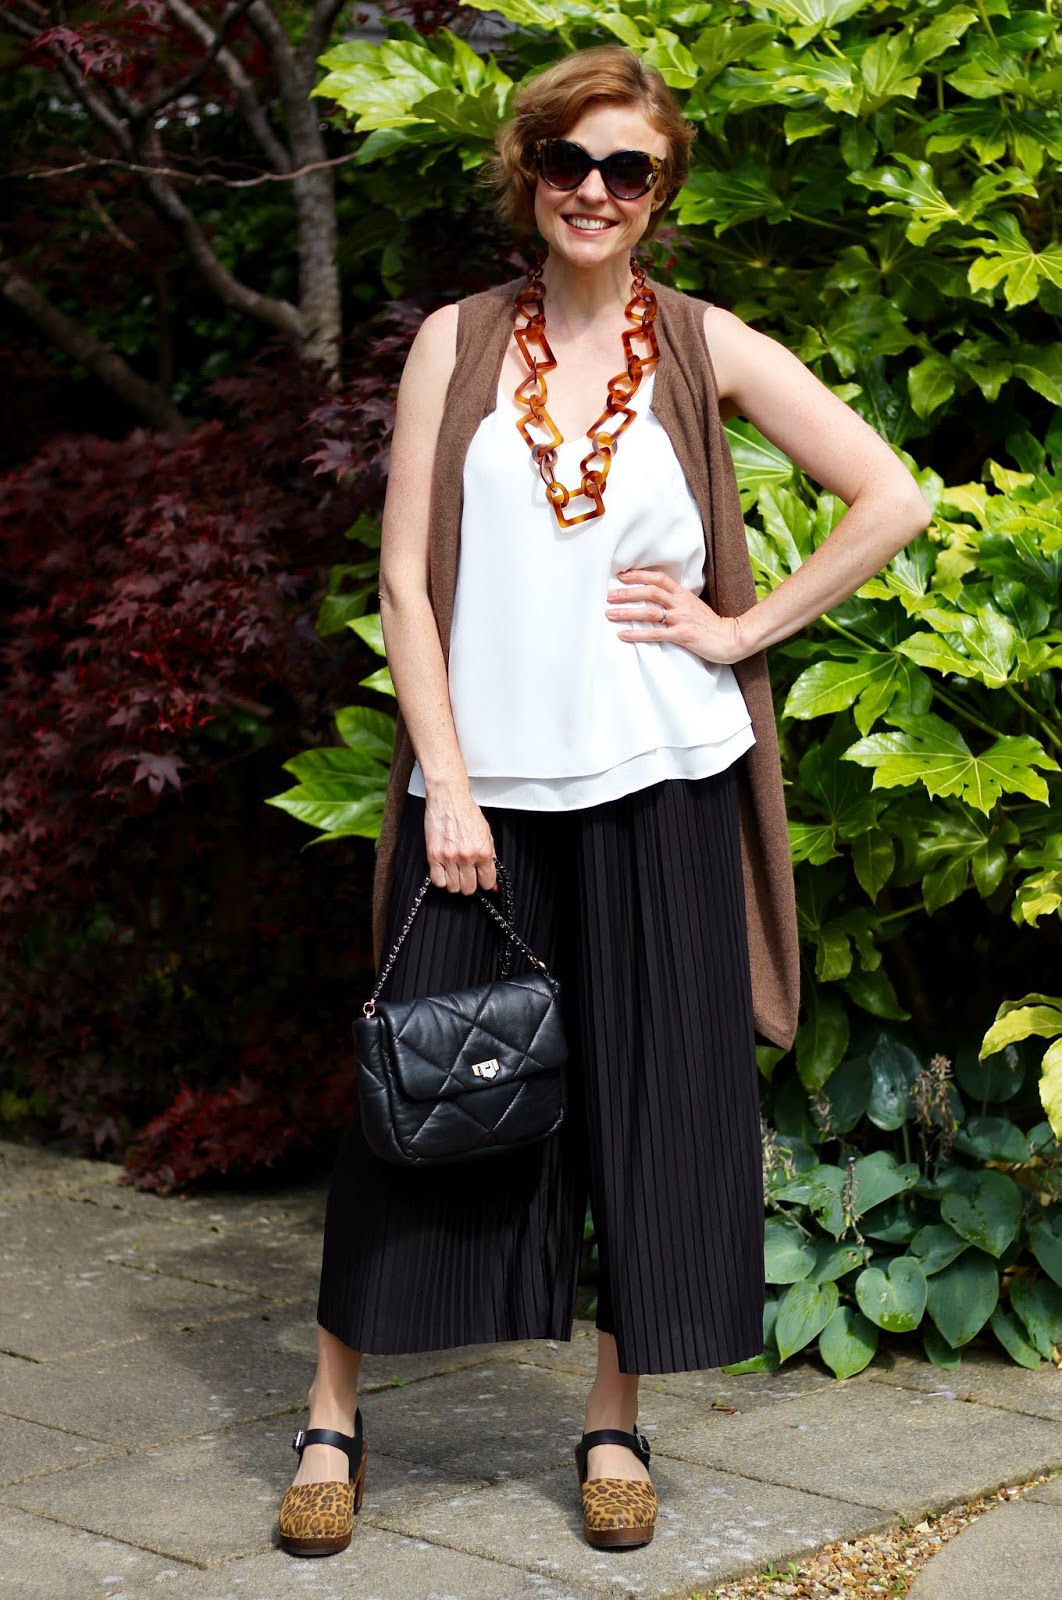 Bloated Belly Outfit | Culottes, Camisole and Long Waistcoat